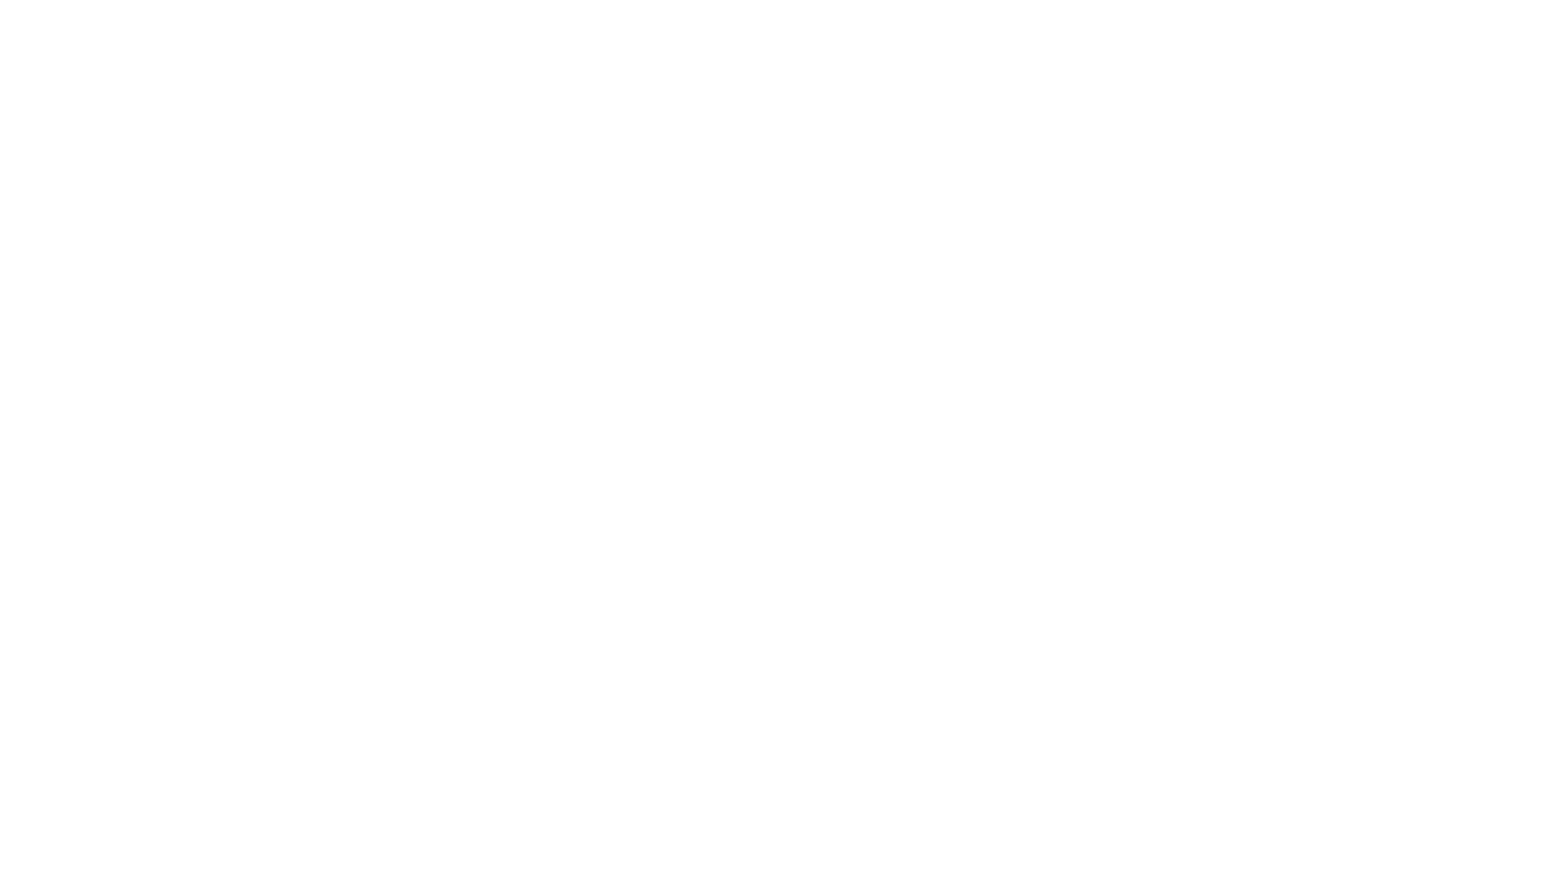 Healthcare communications for Napp pharmaceuticals